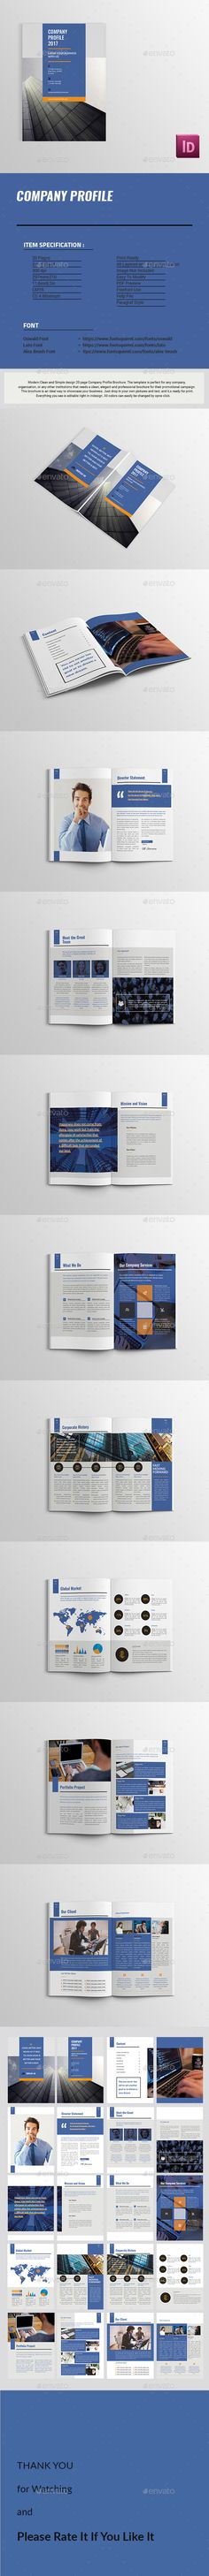 Company Profile Brochure 14 Pages A4 Folletos, Diseño y Cartas - it company profile template